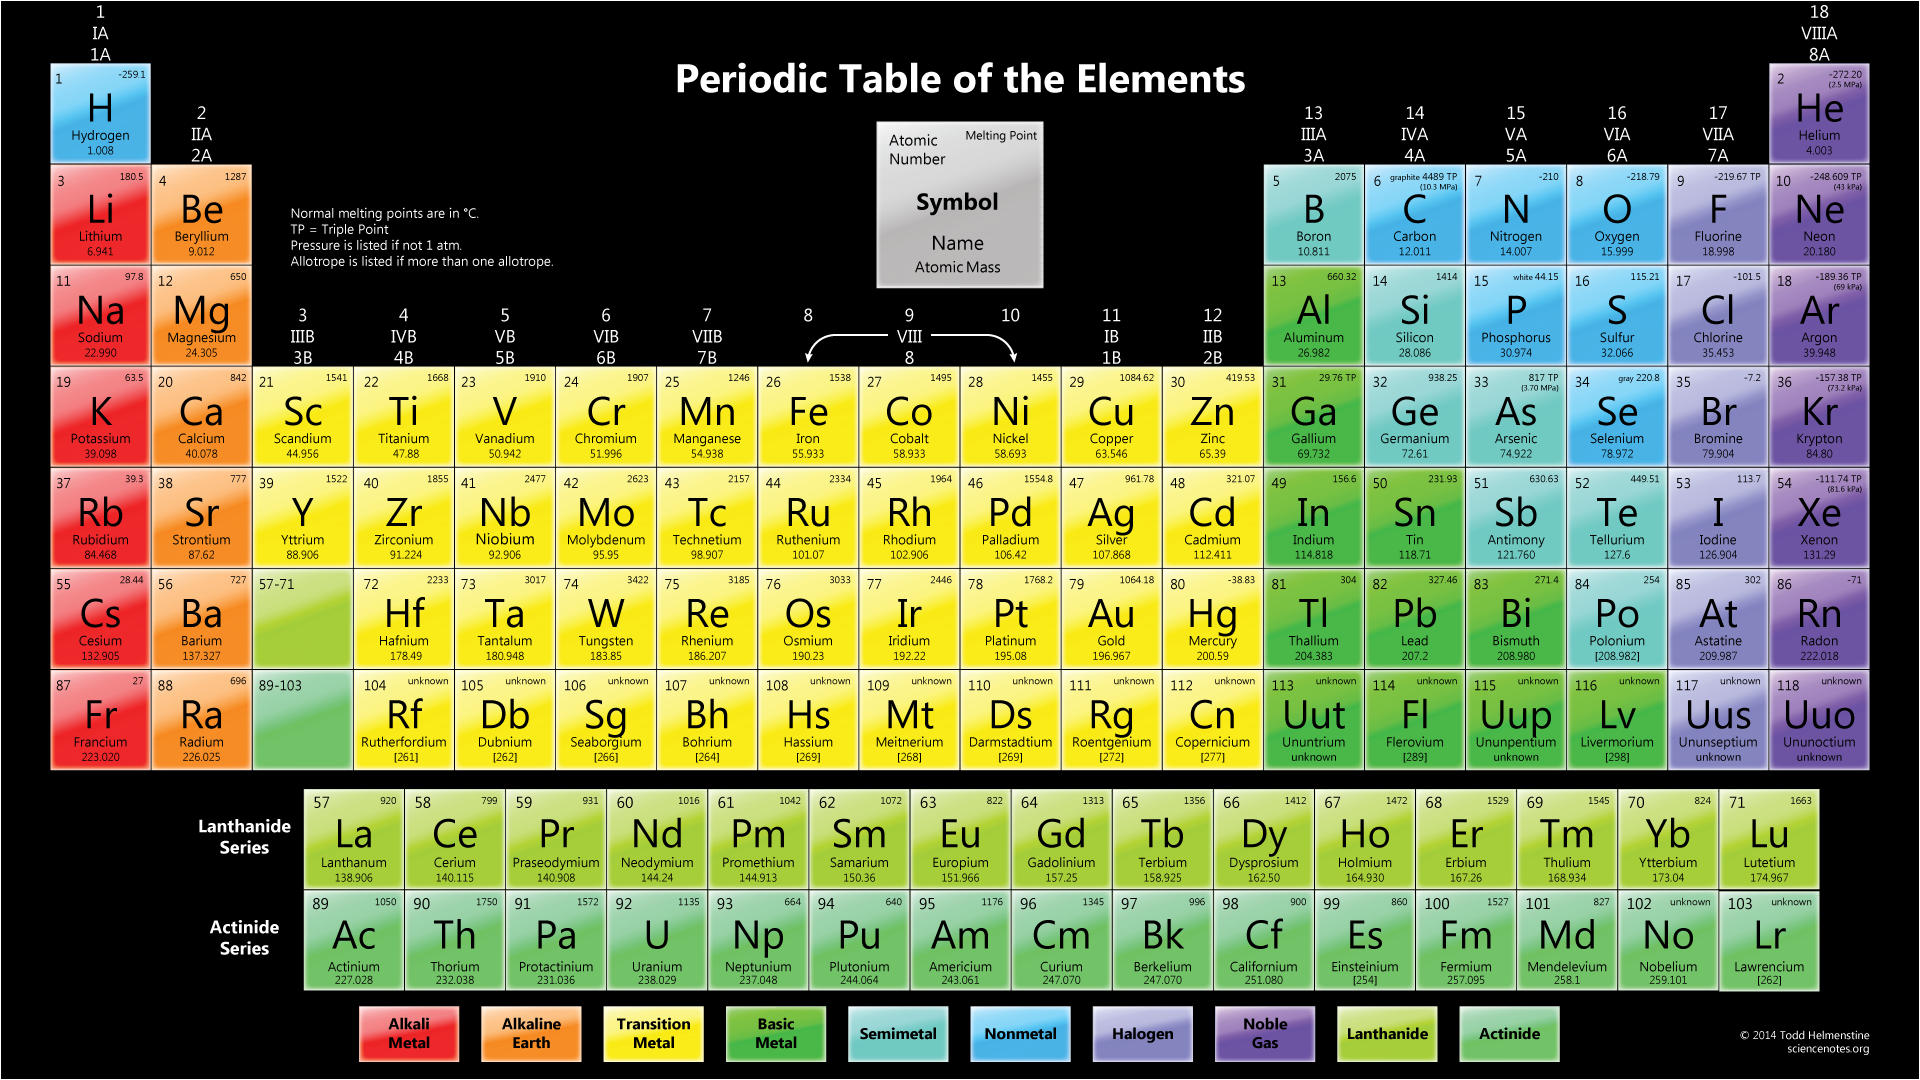 Wallpaper a table wallpapersafari color periodic table with melting points dark background 1920x1080 urtaz Image collections